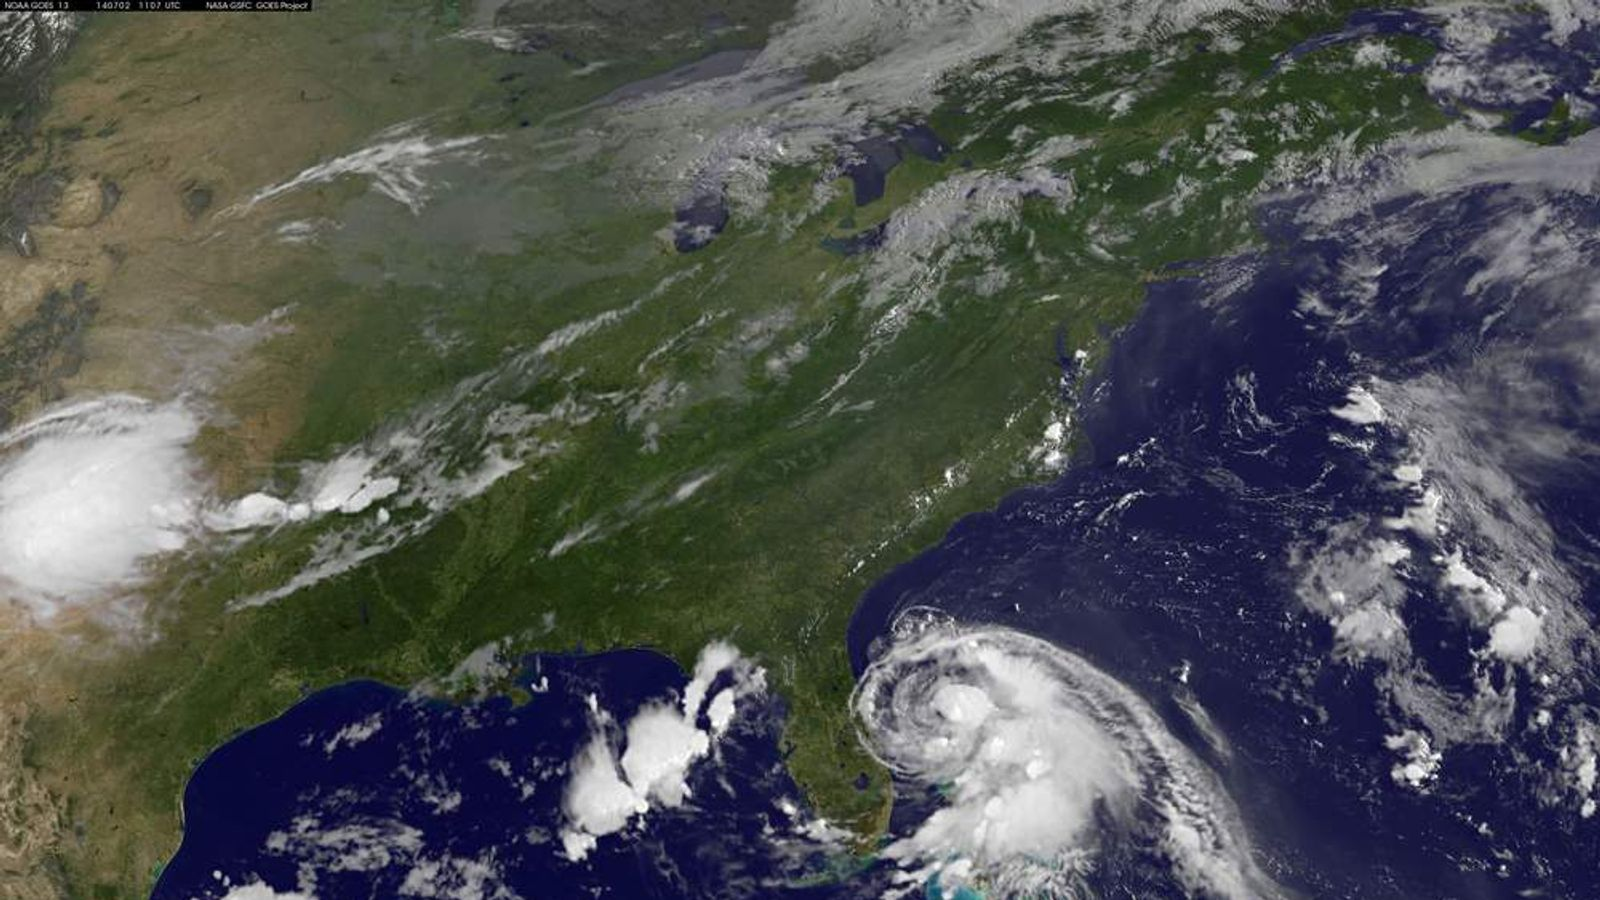 Tropical storm Arthur develops of the east coast of Florida